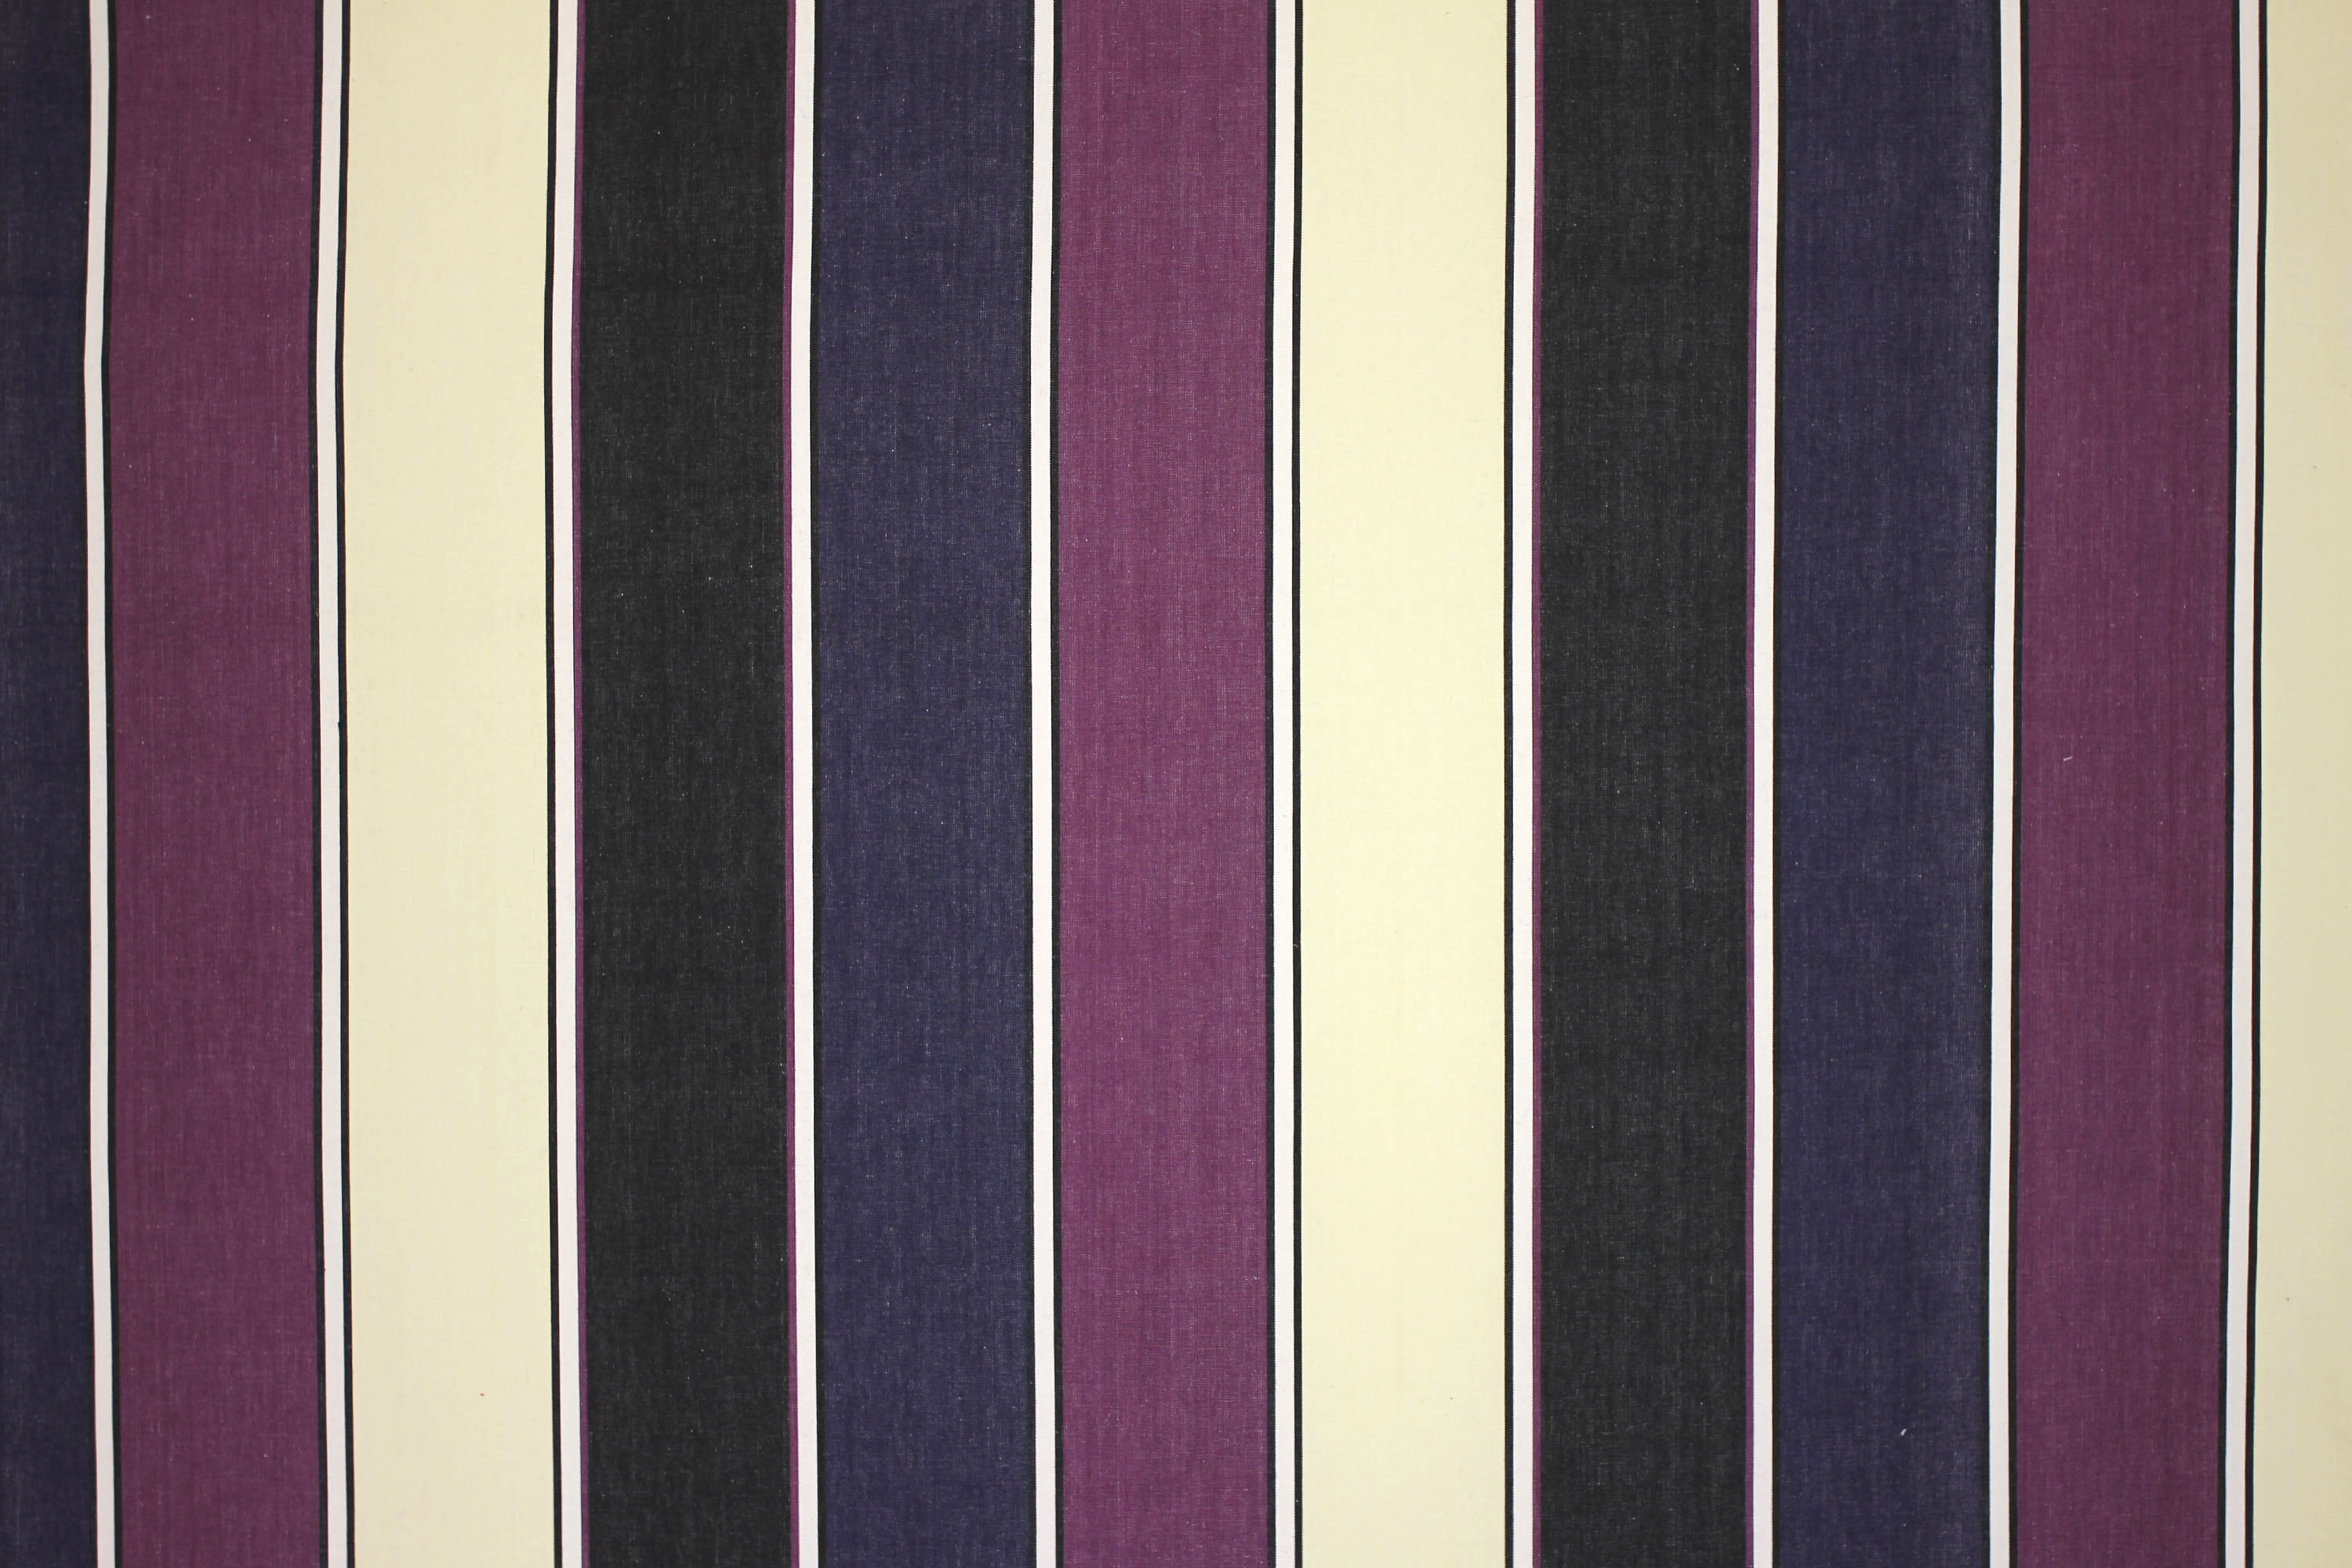 Black Striped Fabrics | Stripe Cotton Fabrics | Striped Curtain Fabrics | Upholstery Fabrics  Gymnastics Stripes